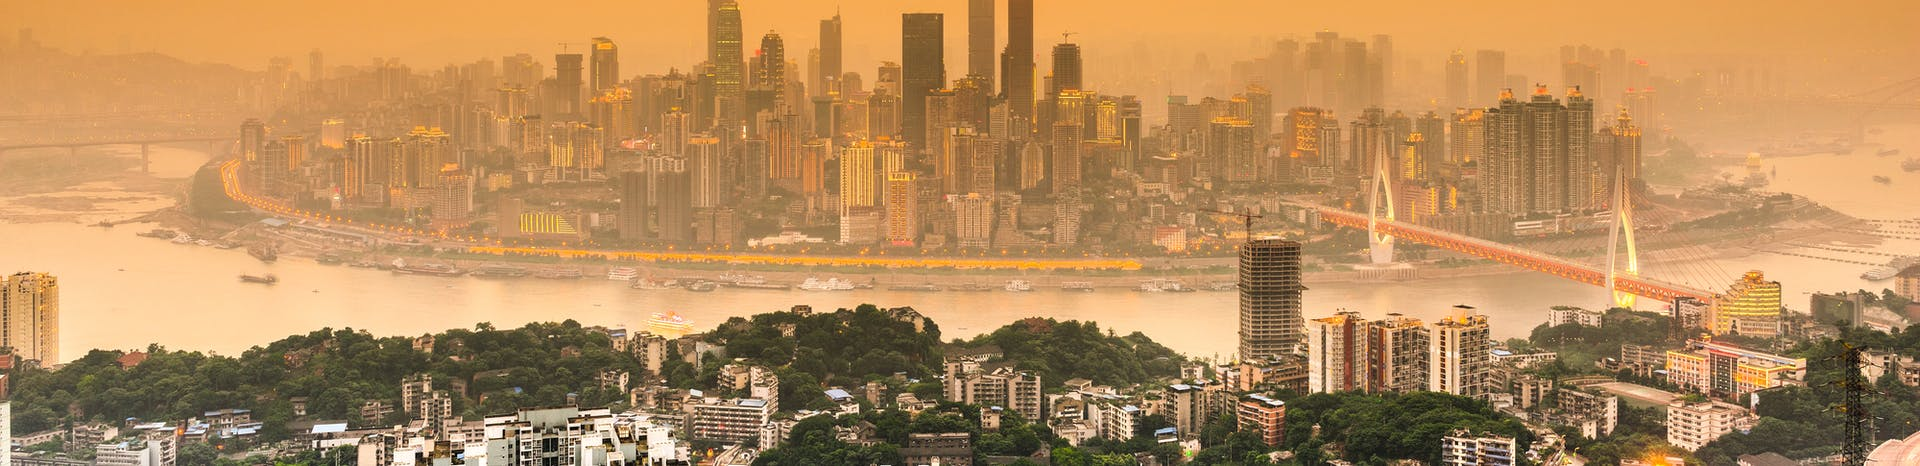 Picture of Chongqing